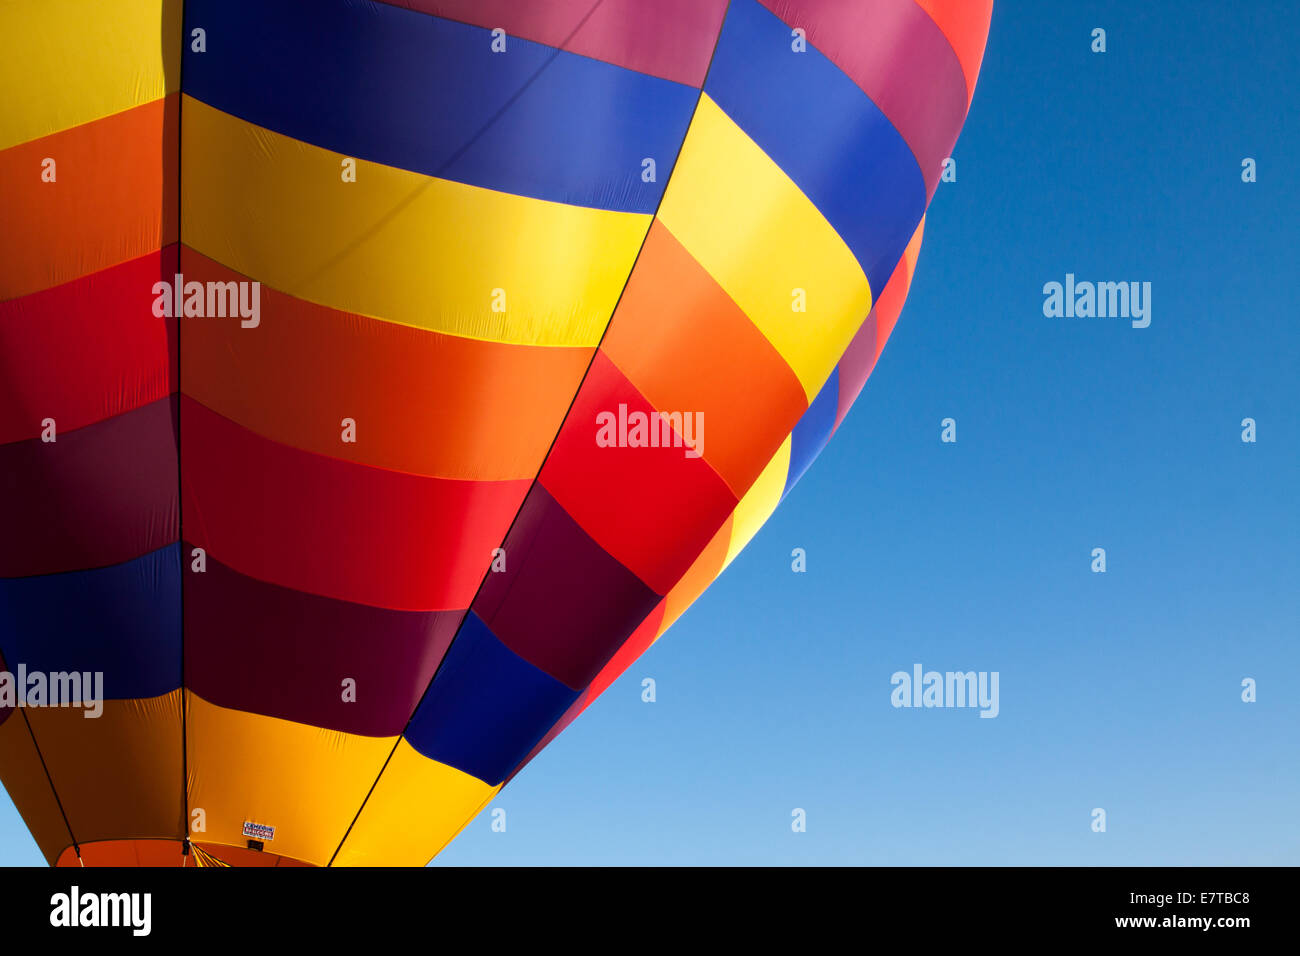 A bright jewel-toned hot air balloon is readied for launch - Stock Image